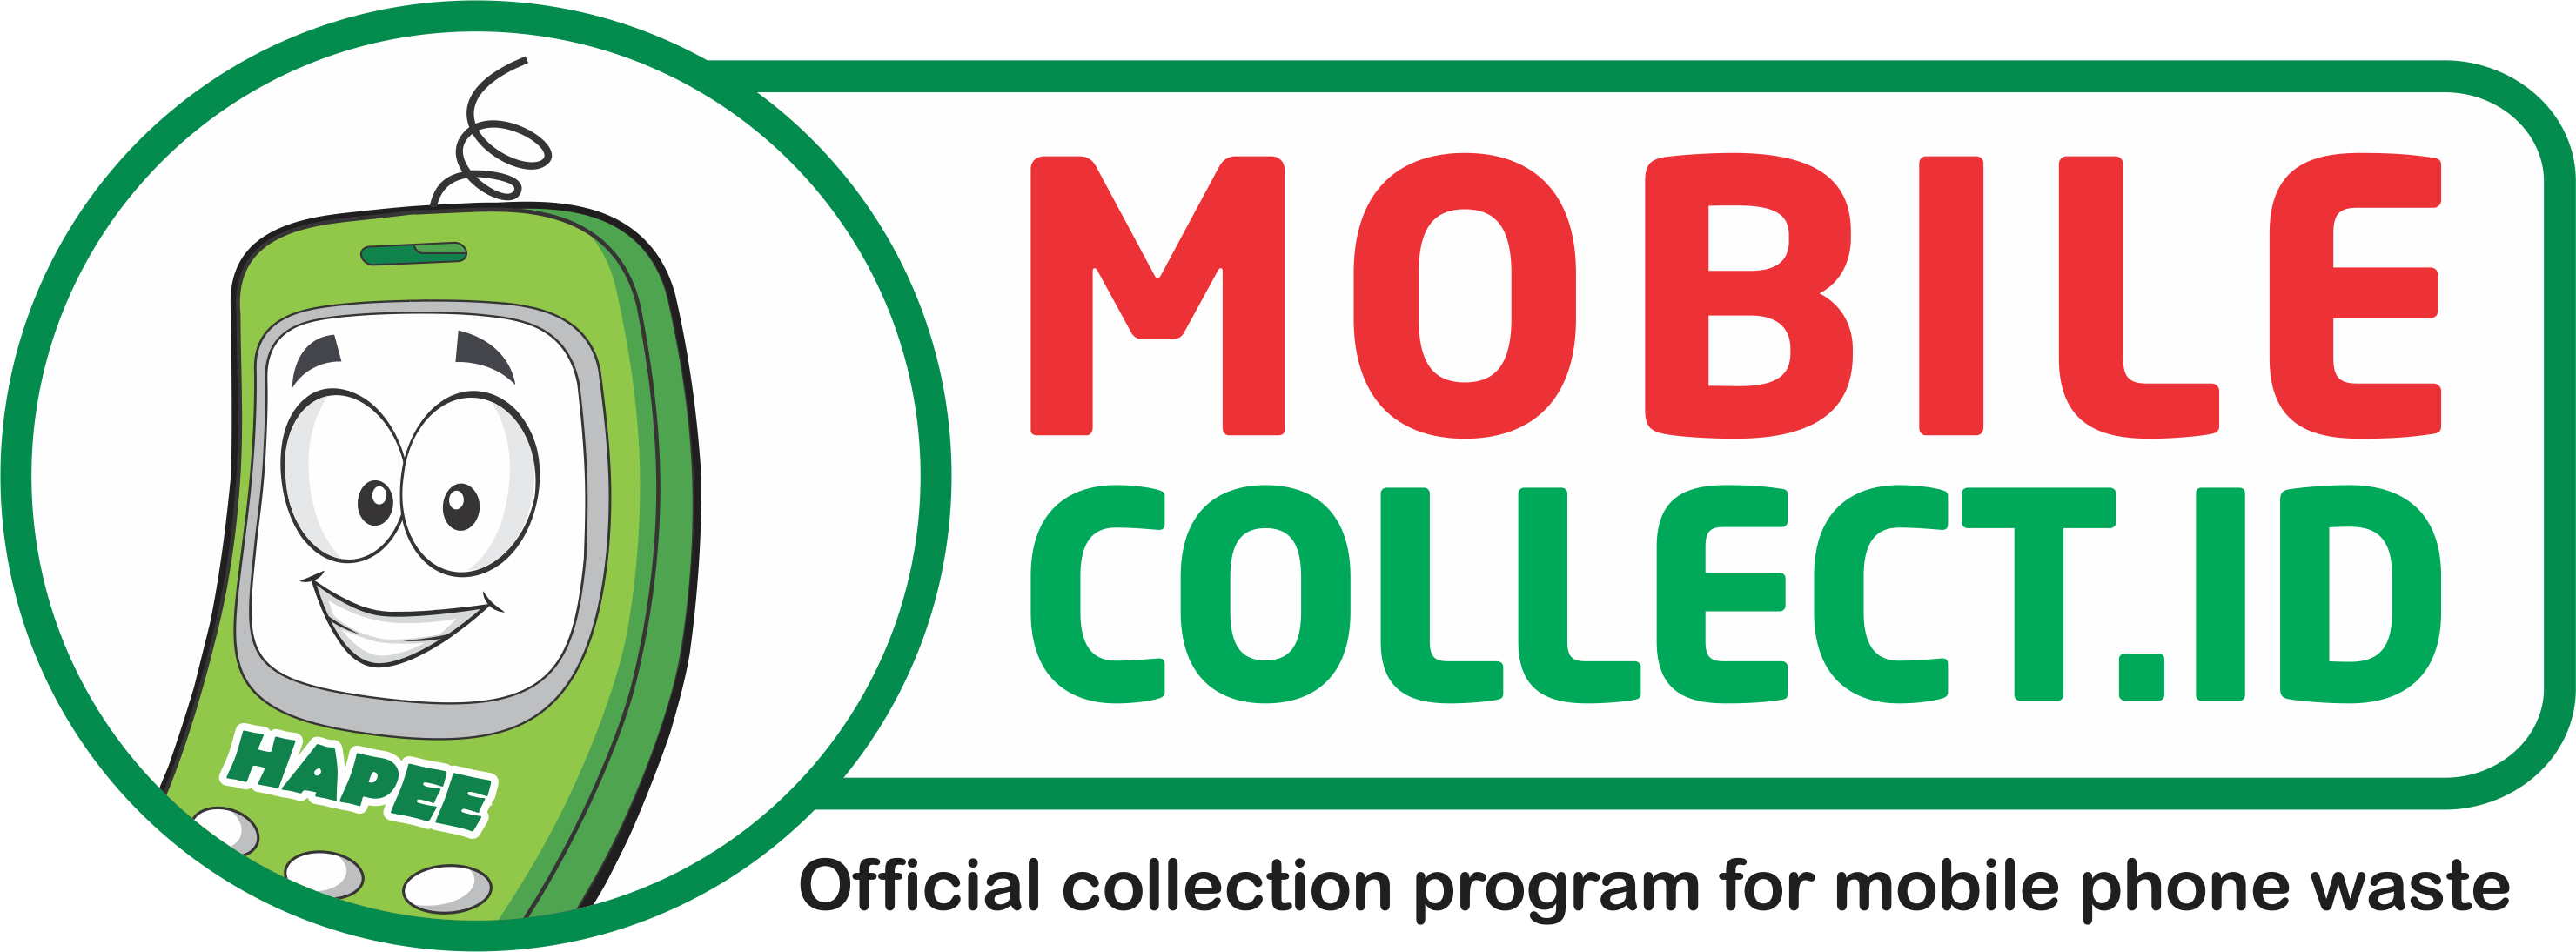 Mobile Collect